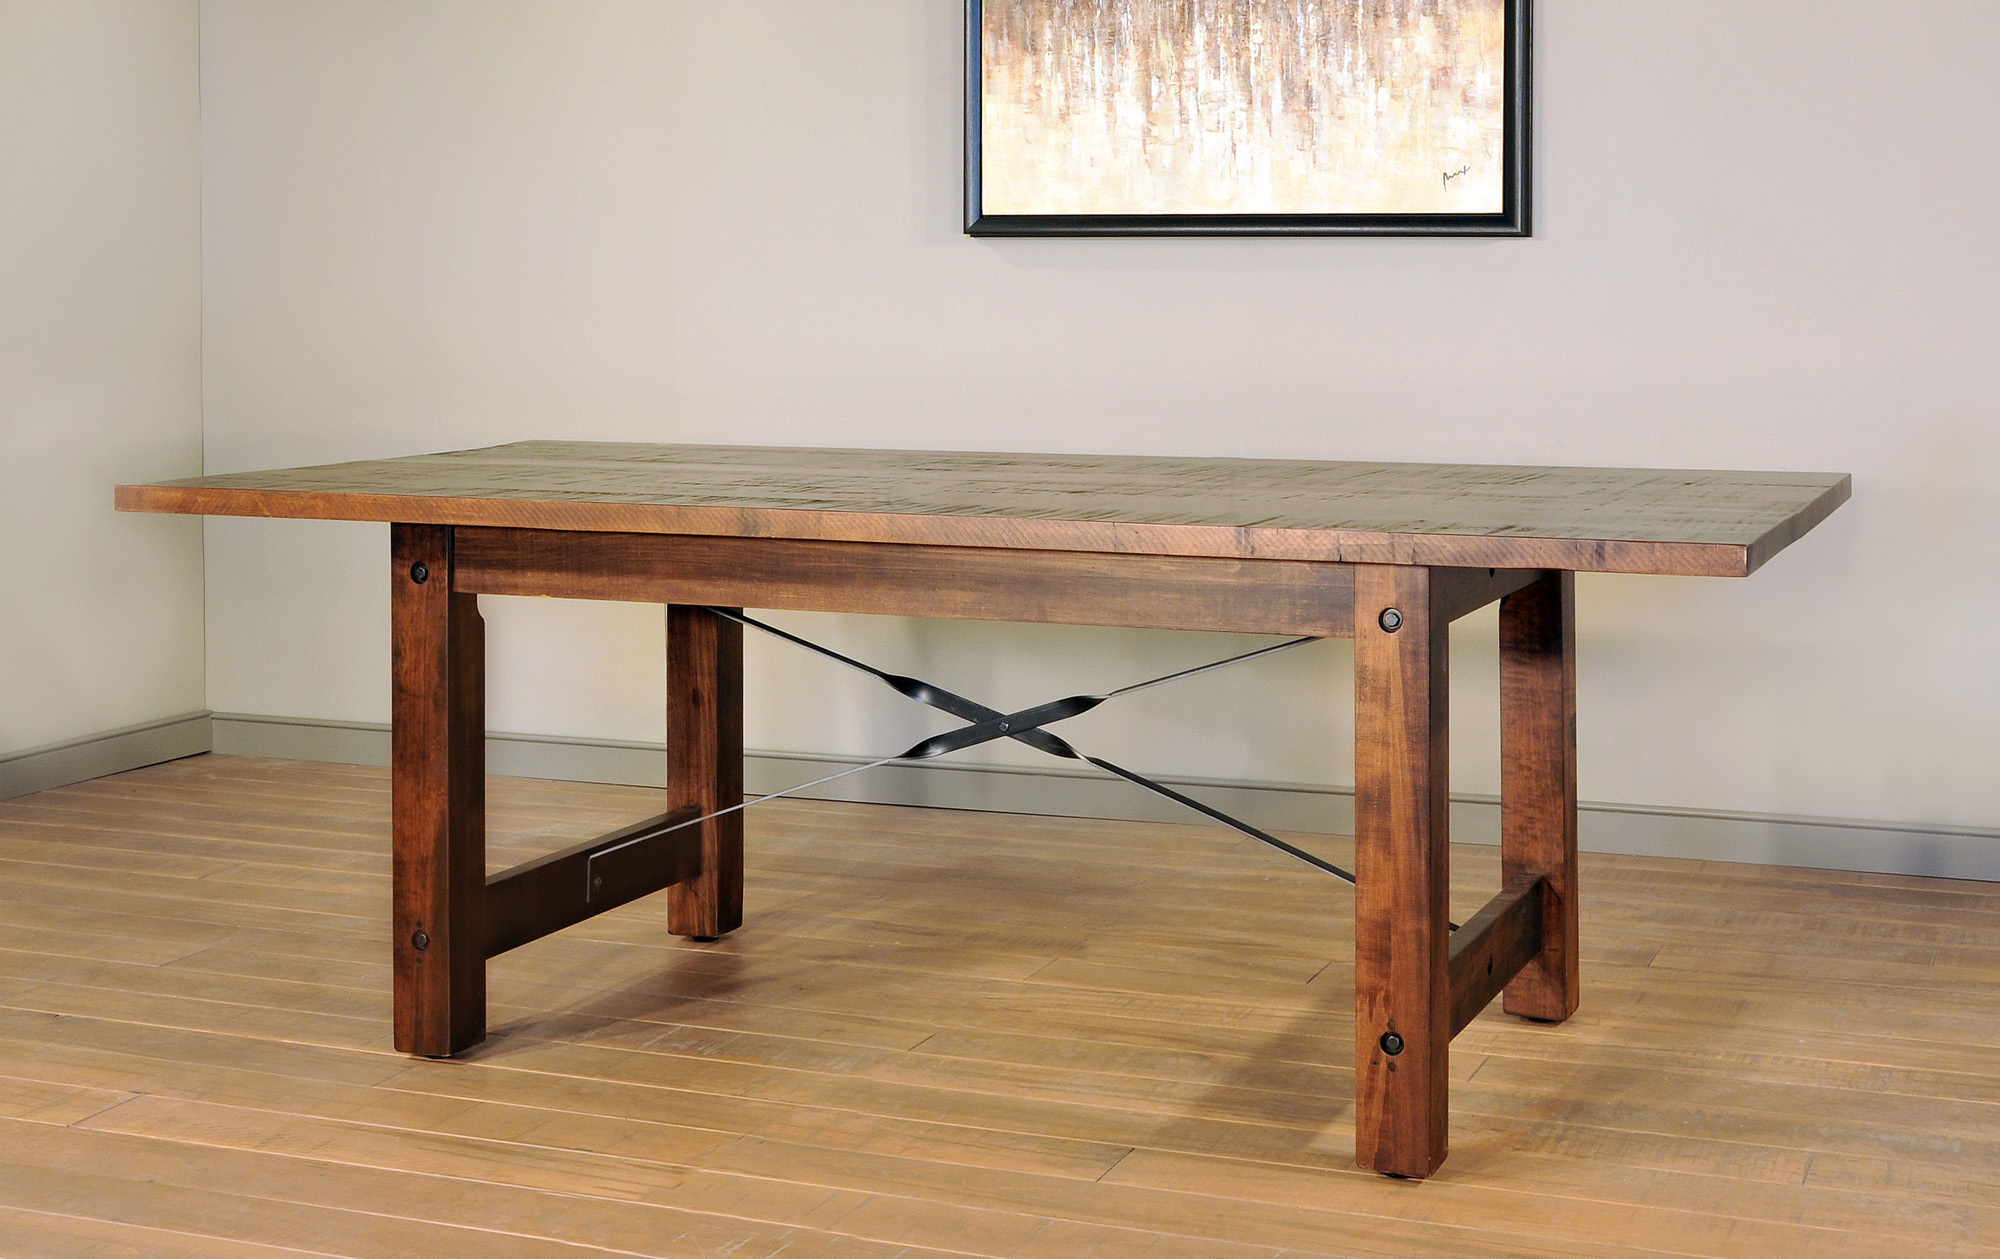 Beam table by Ruff Sawn BEA3648ST